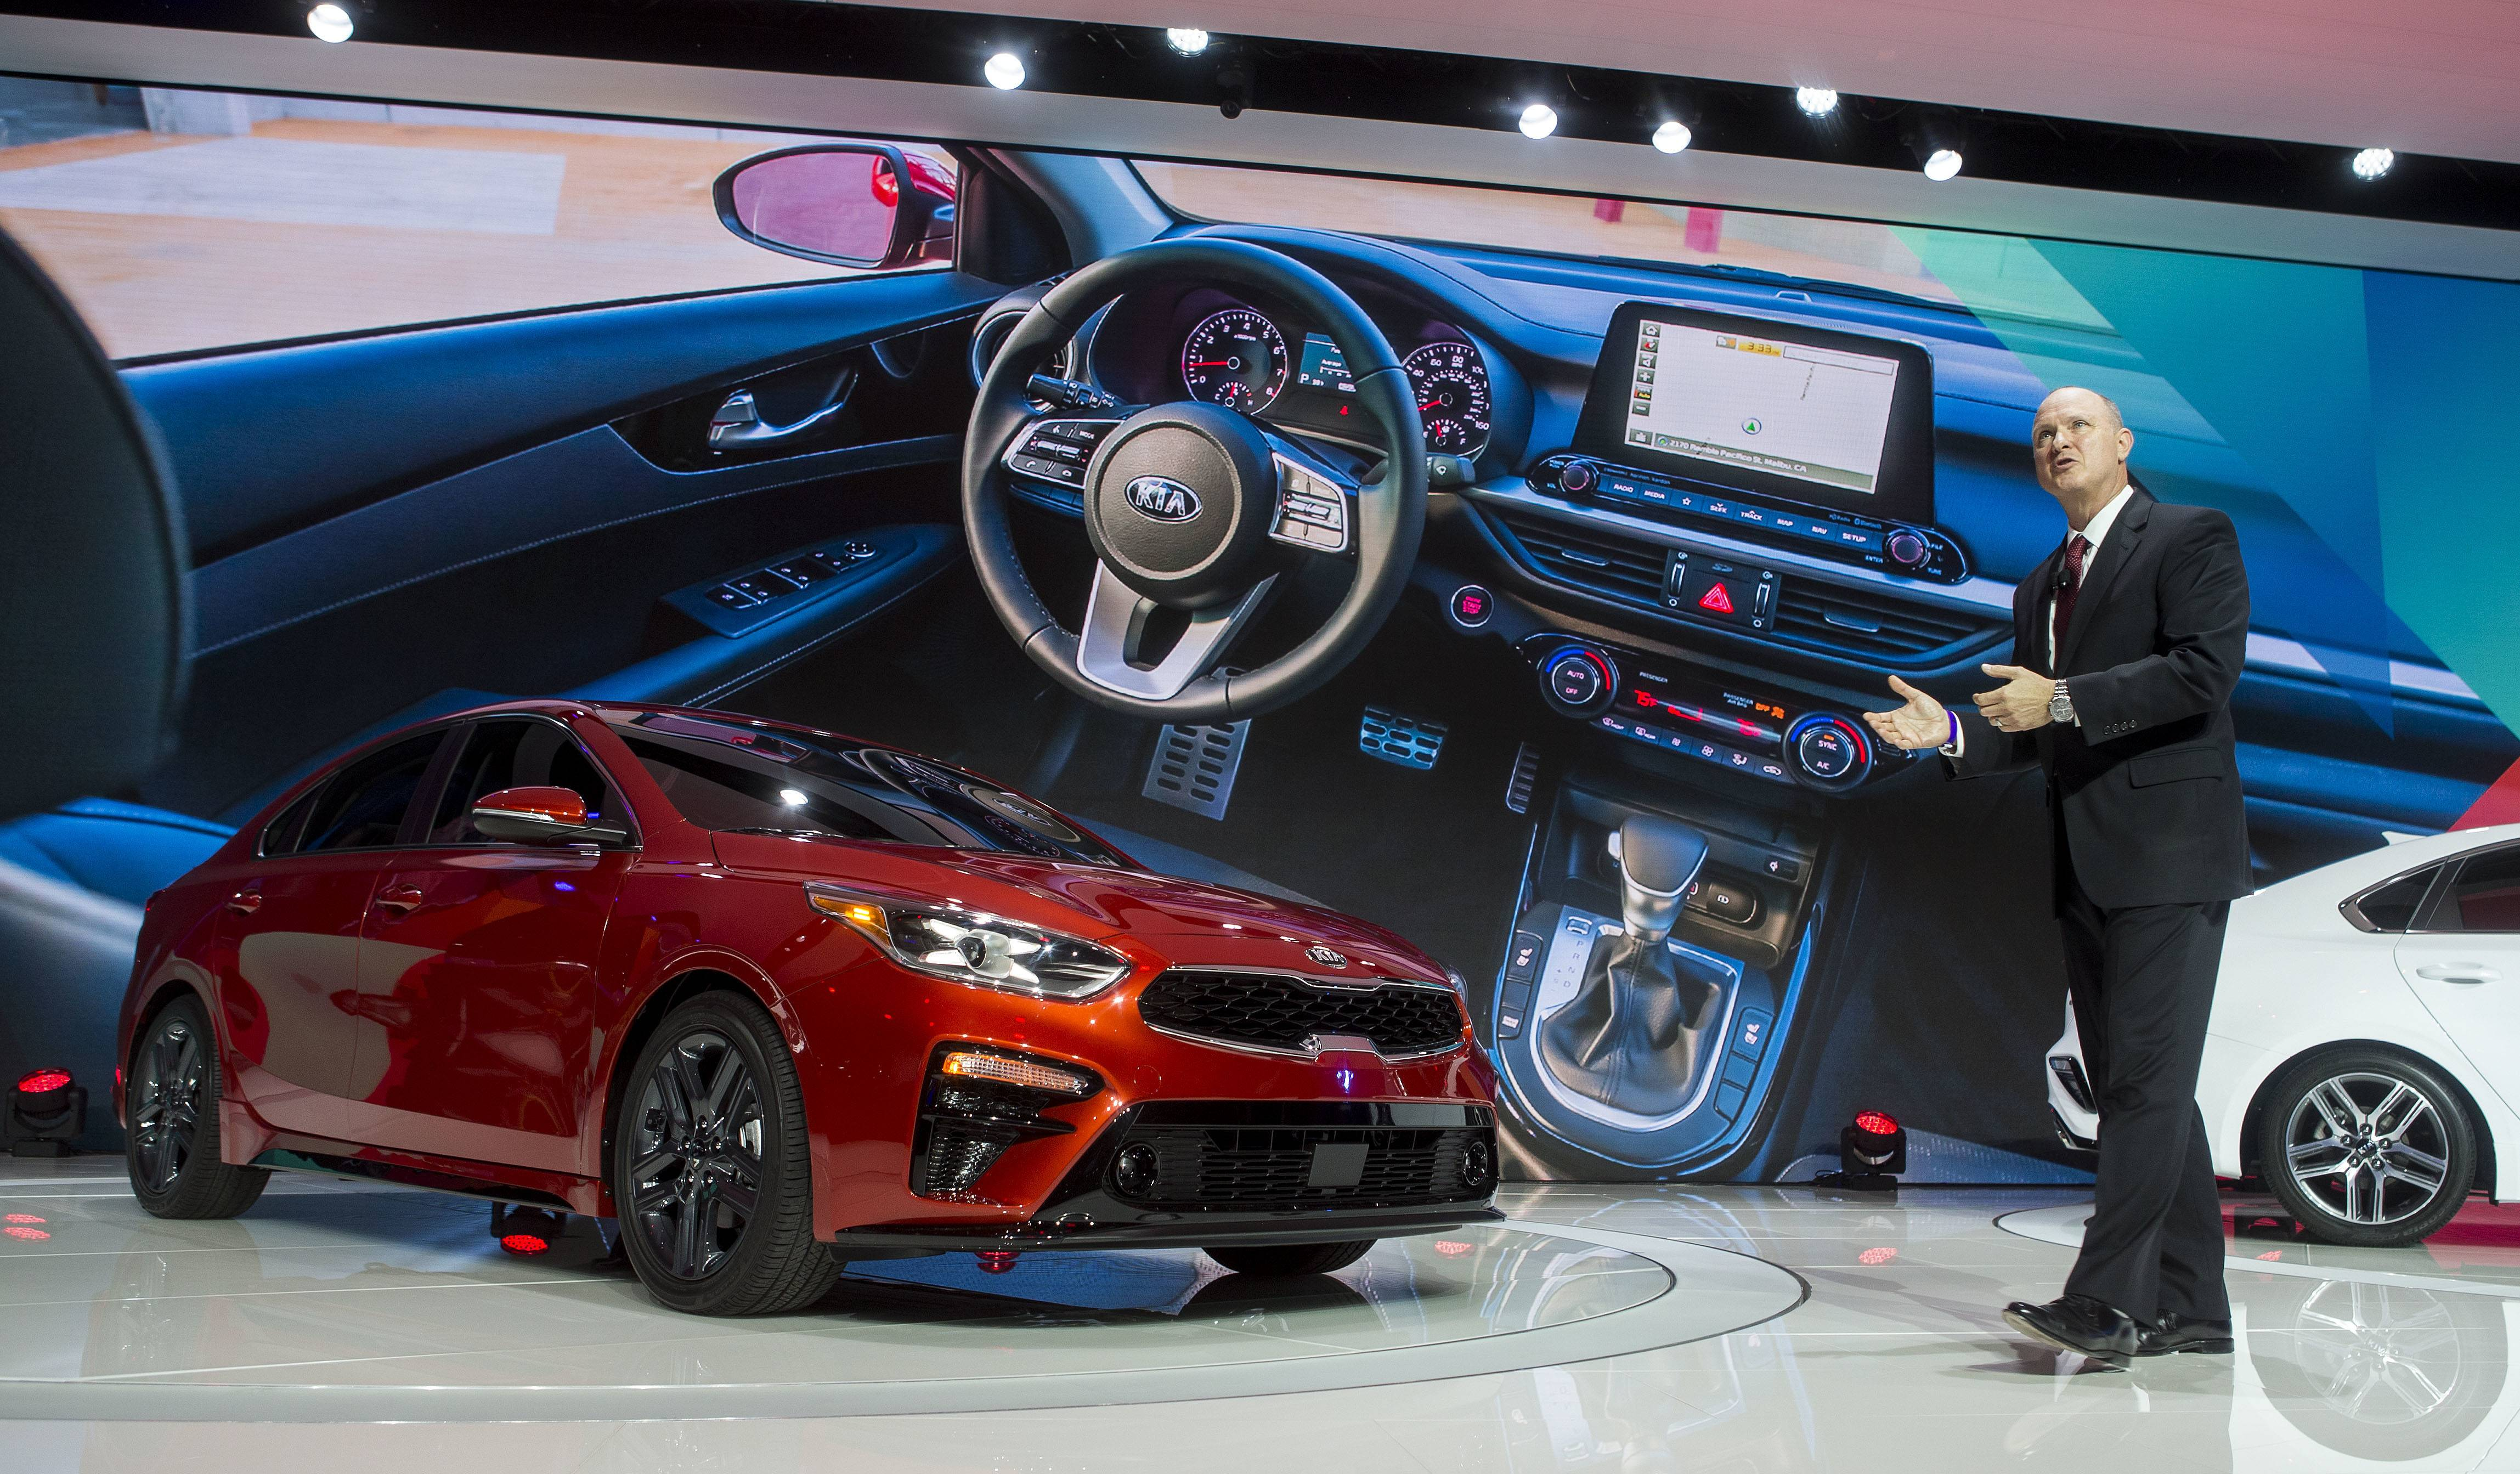 Orth Hedrick, vice president of product planning at Kia Motors America, speaks about the new Kia Forte sedan in Detroit.